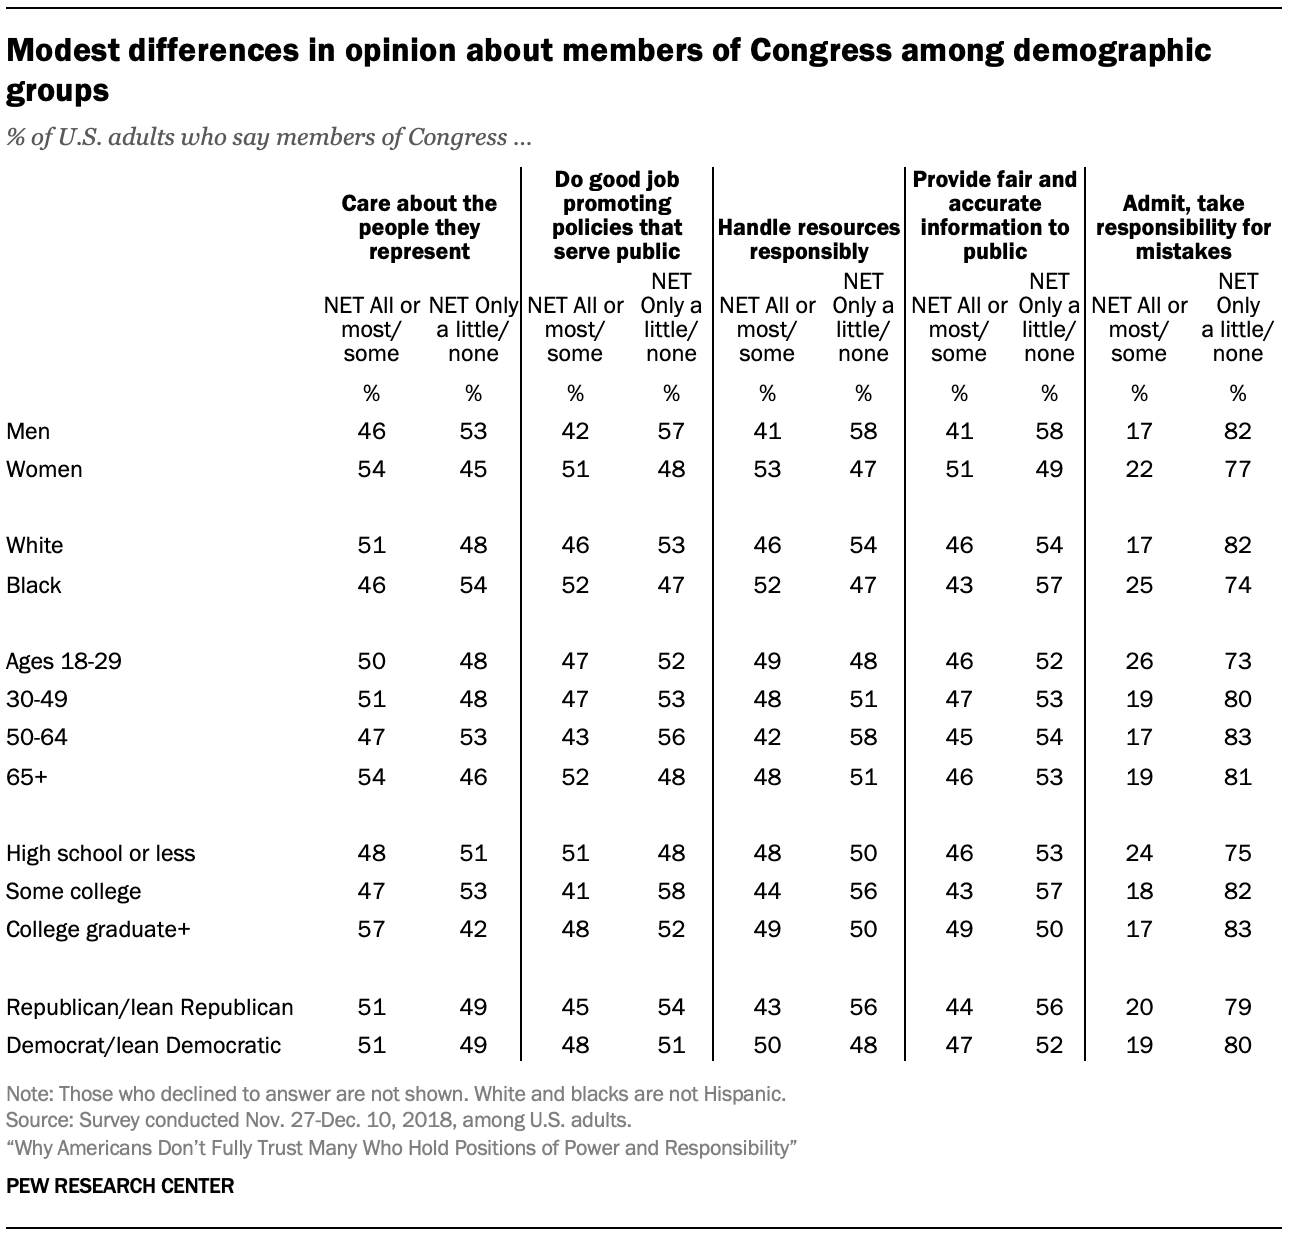 Modest differences in opinion about members of Congress among demographic groups